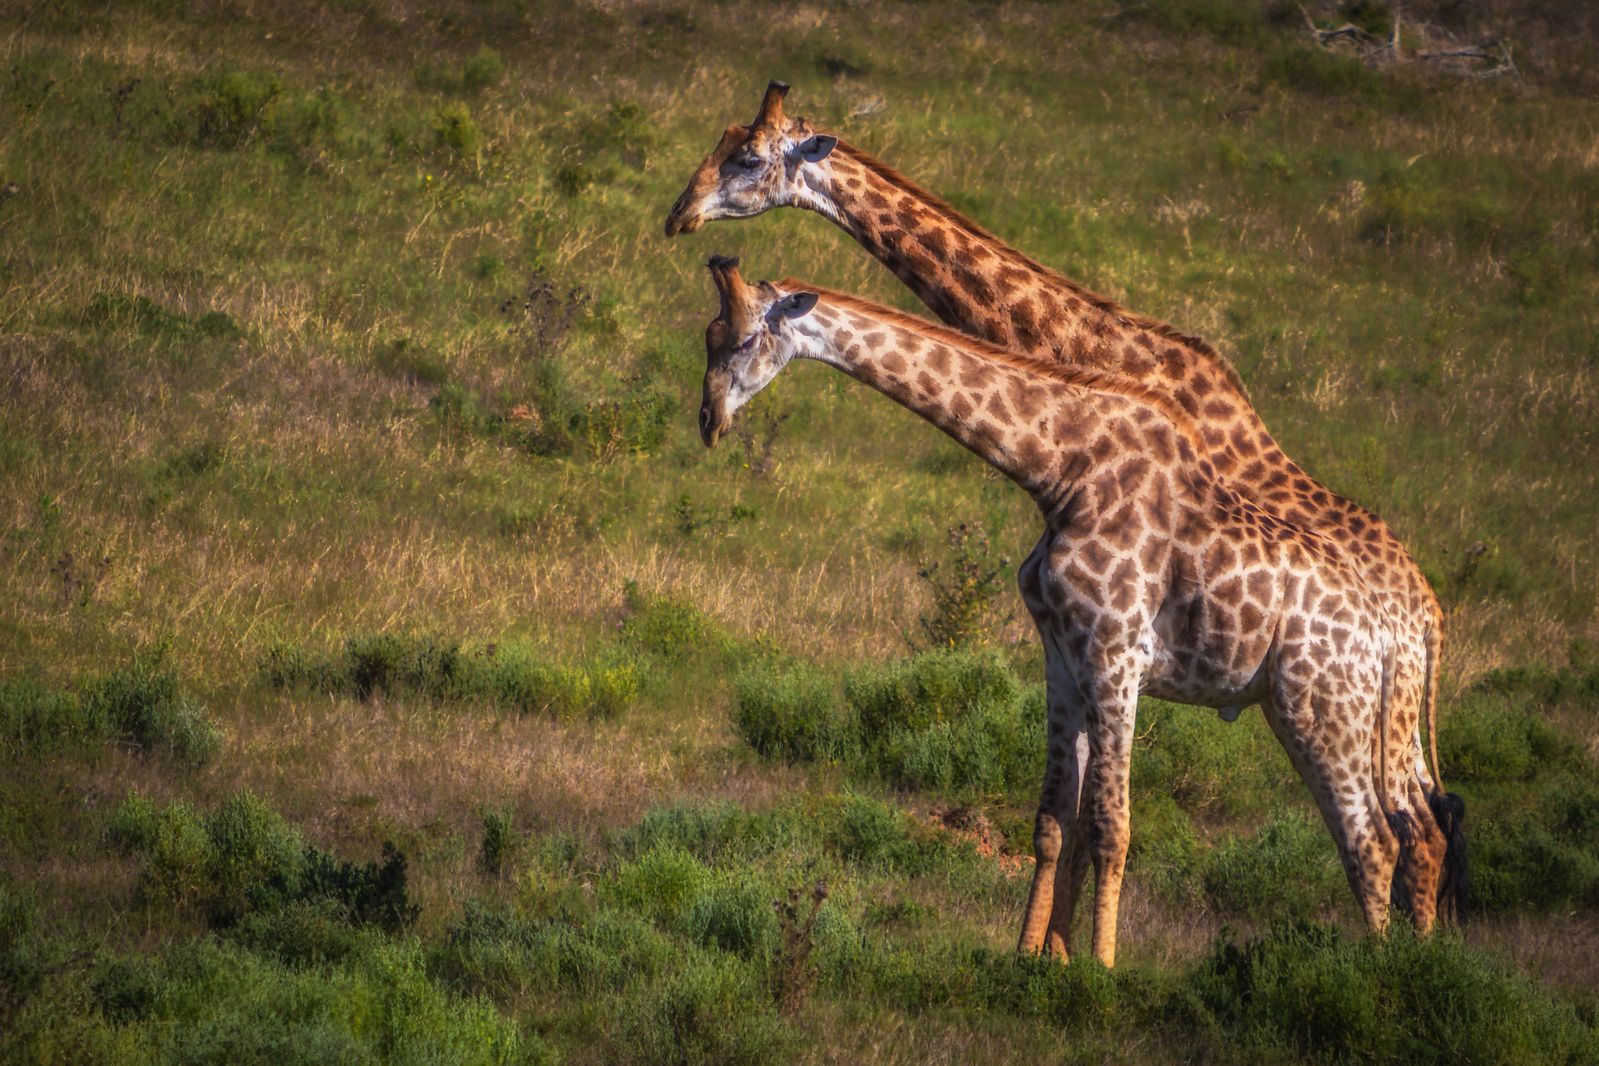 Two Giraffes out for a stroll. wildlife south africa